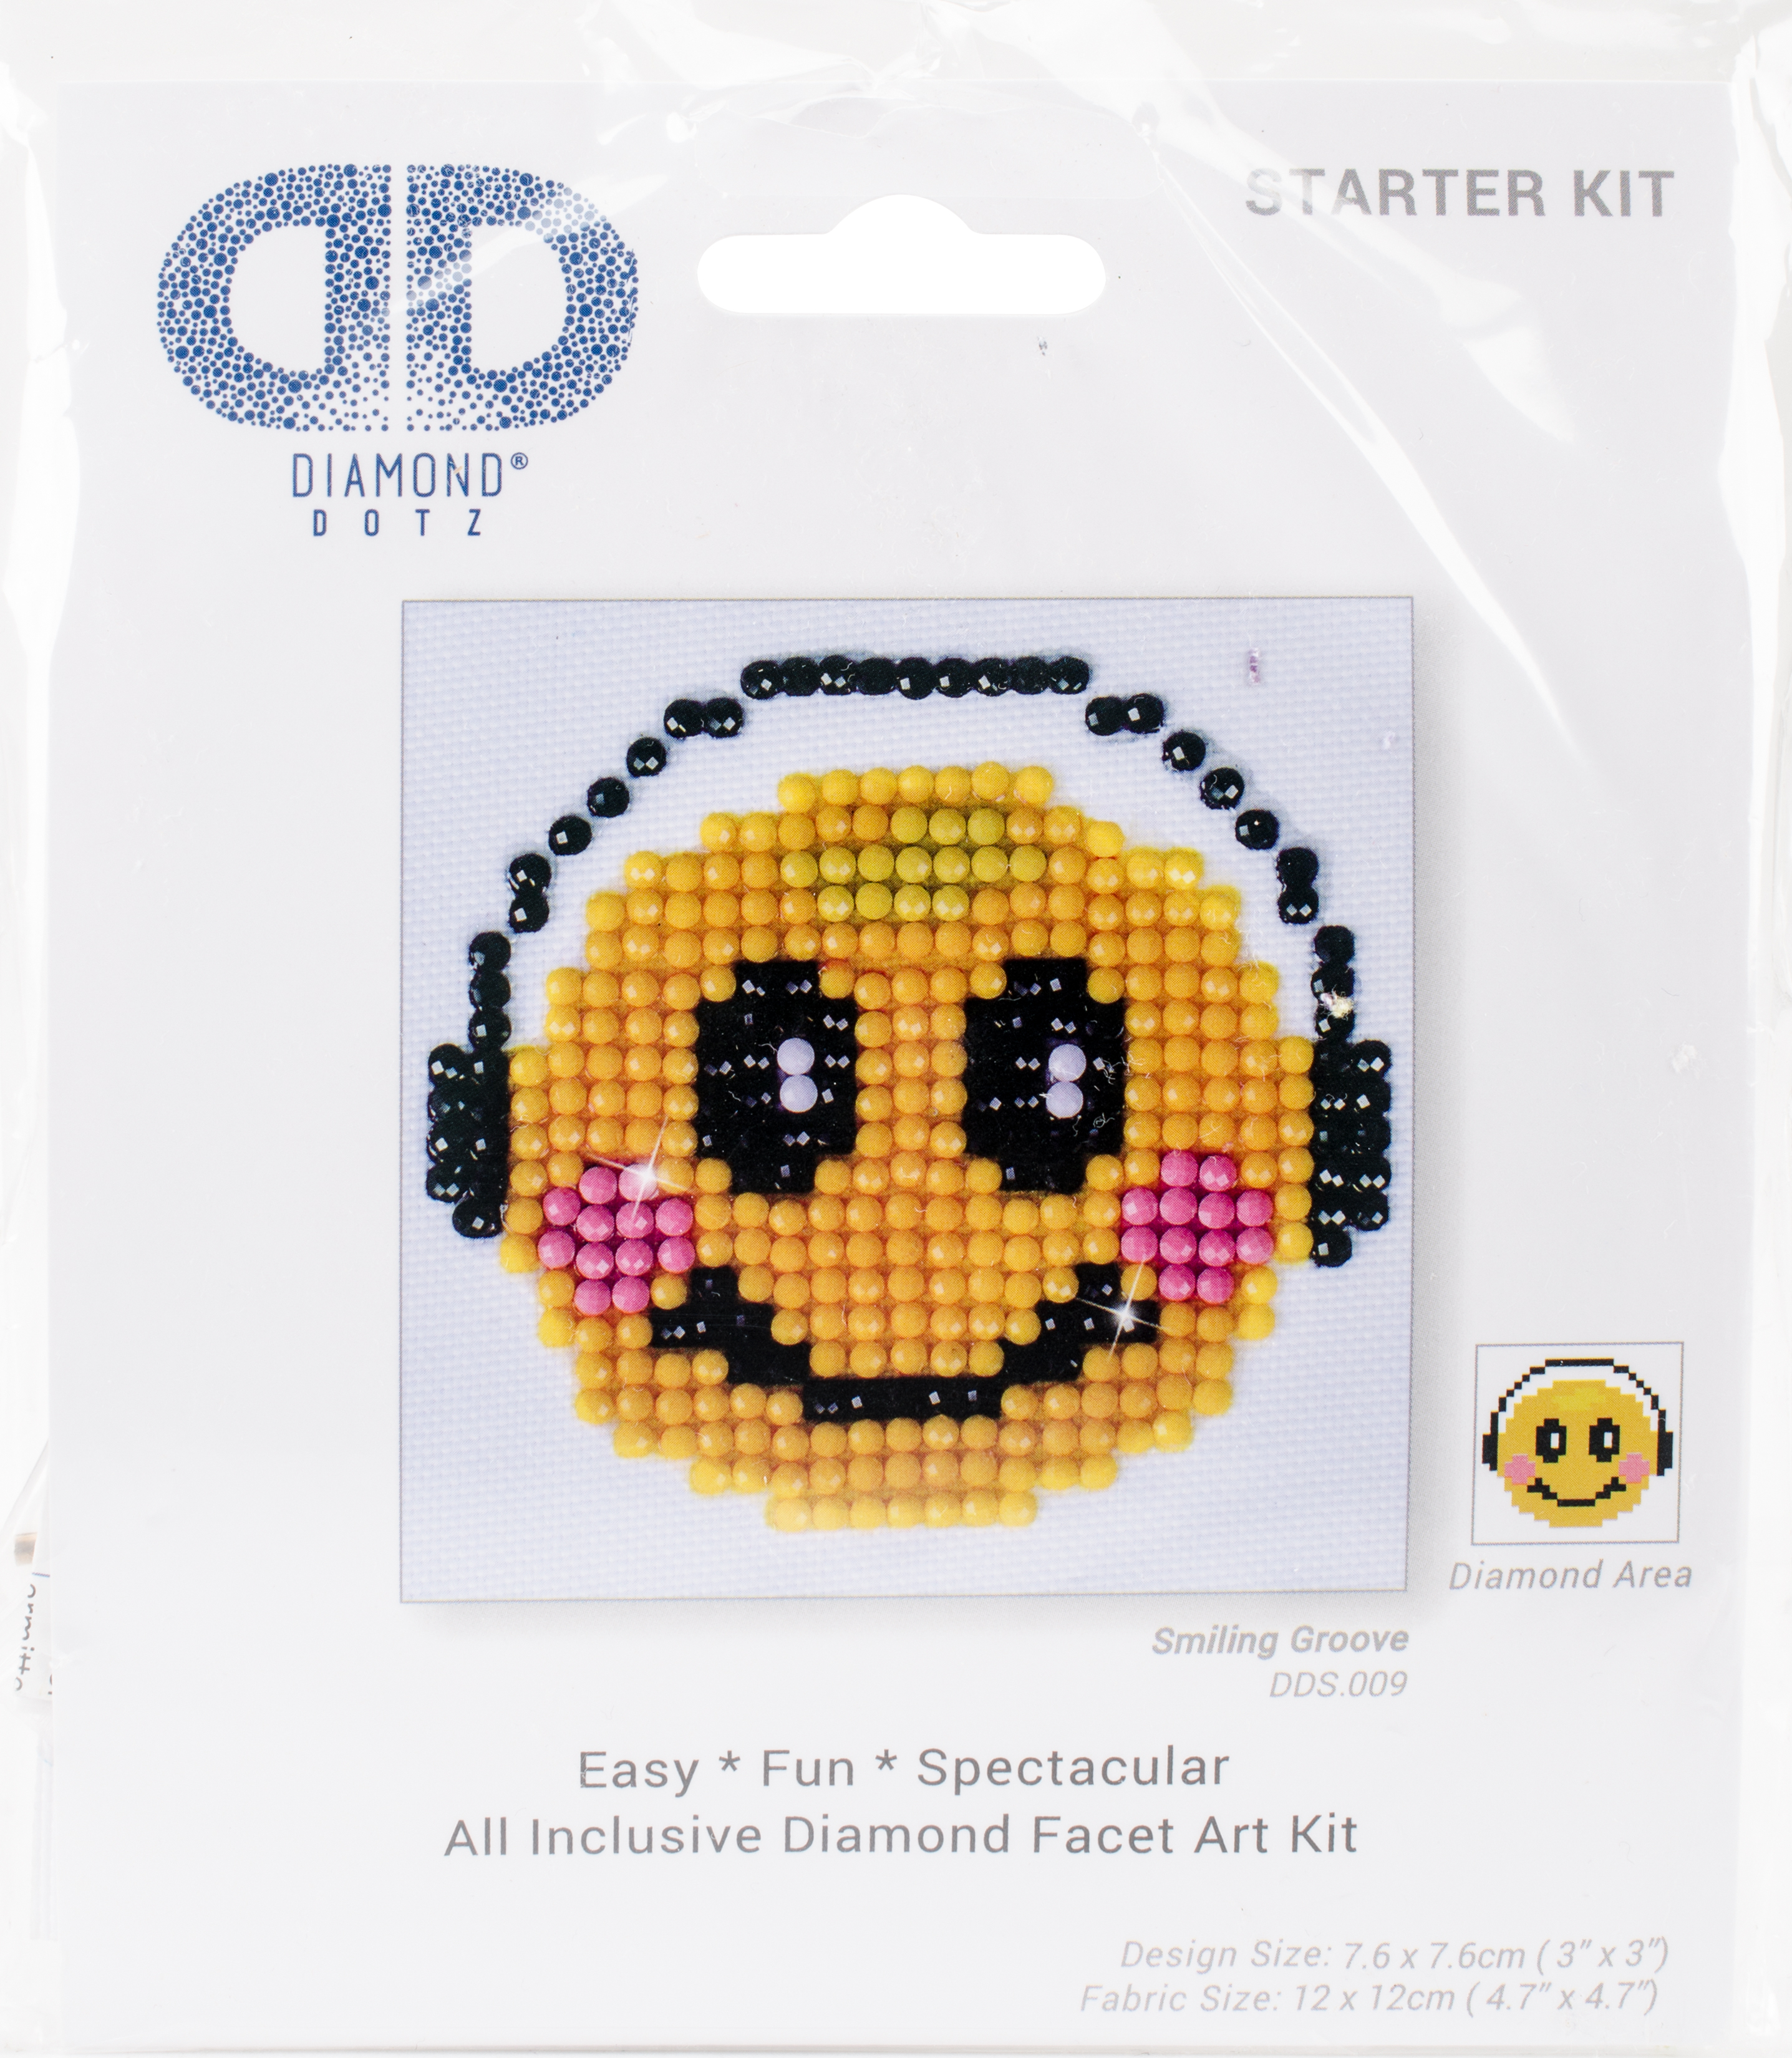 Diamond Dotz Diamond Embroidery Facet Art Kit 4.75X4.75-Smiling Groove